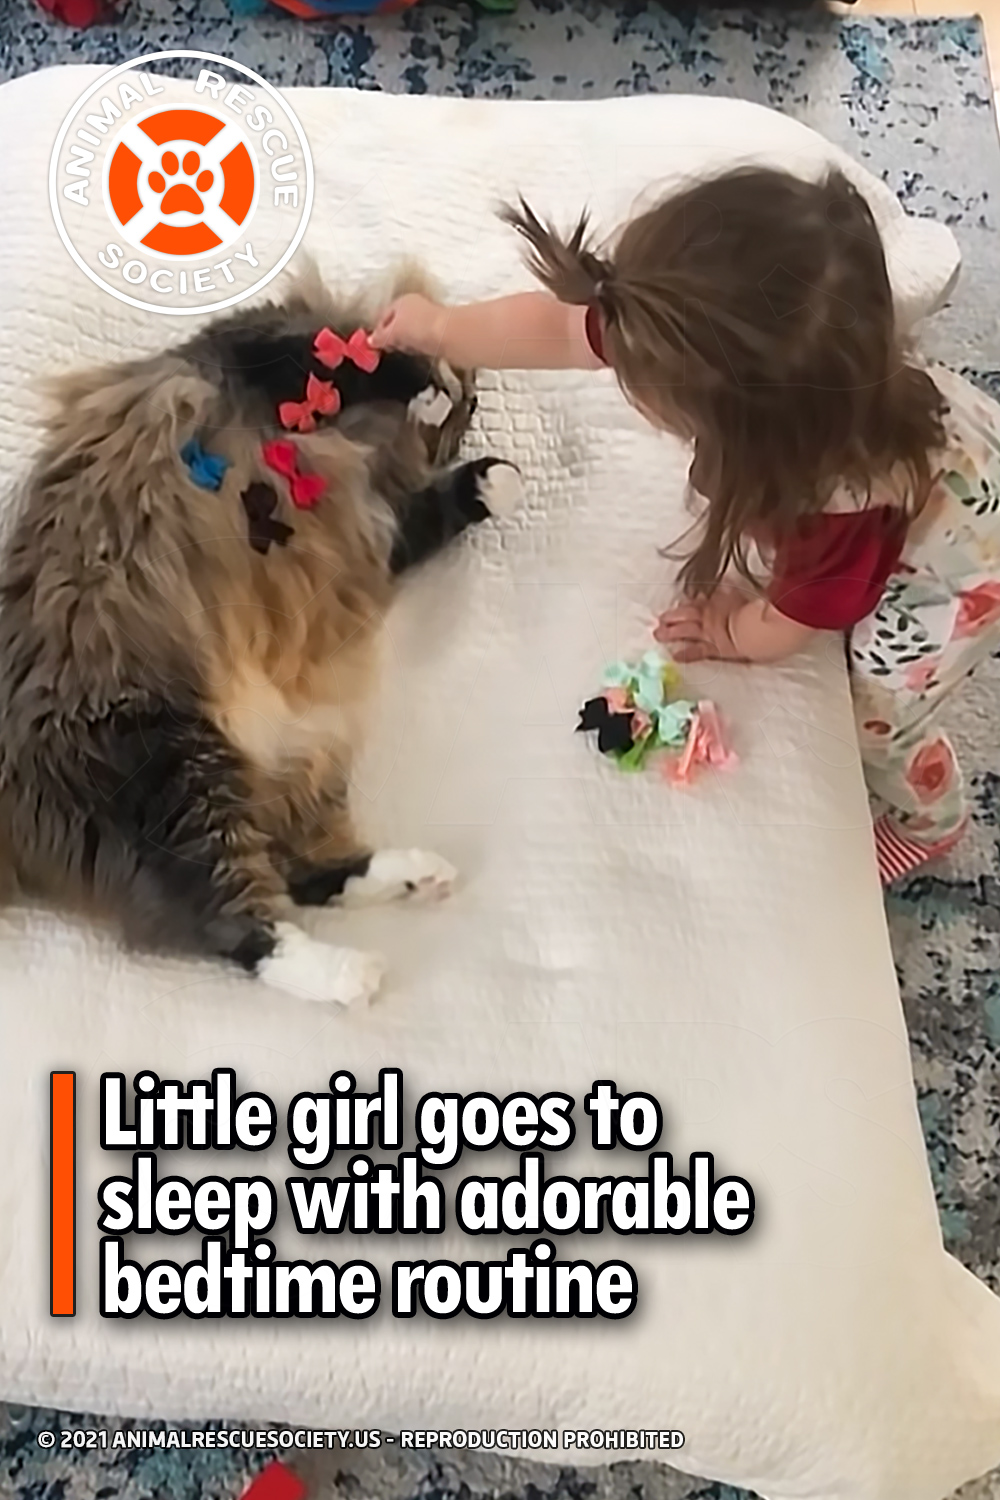 Little girl goes to sleep with adorable bedtime routine